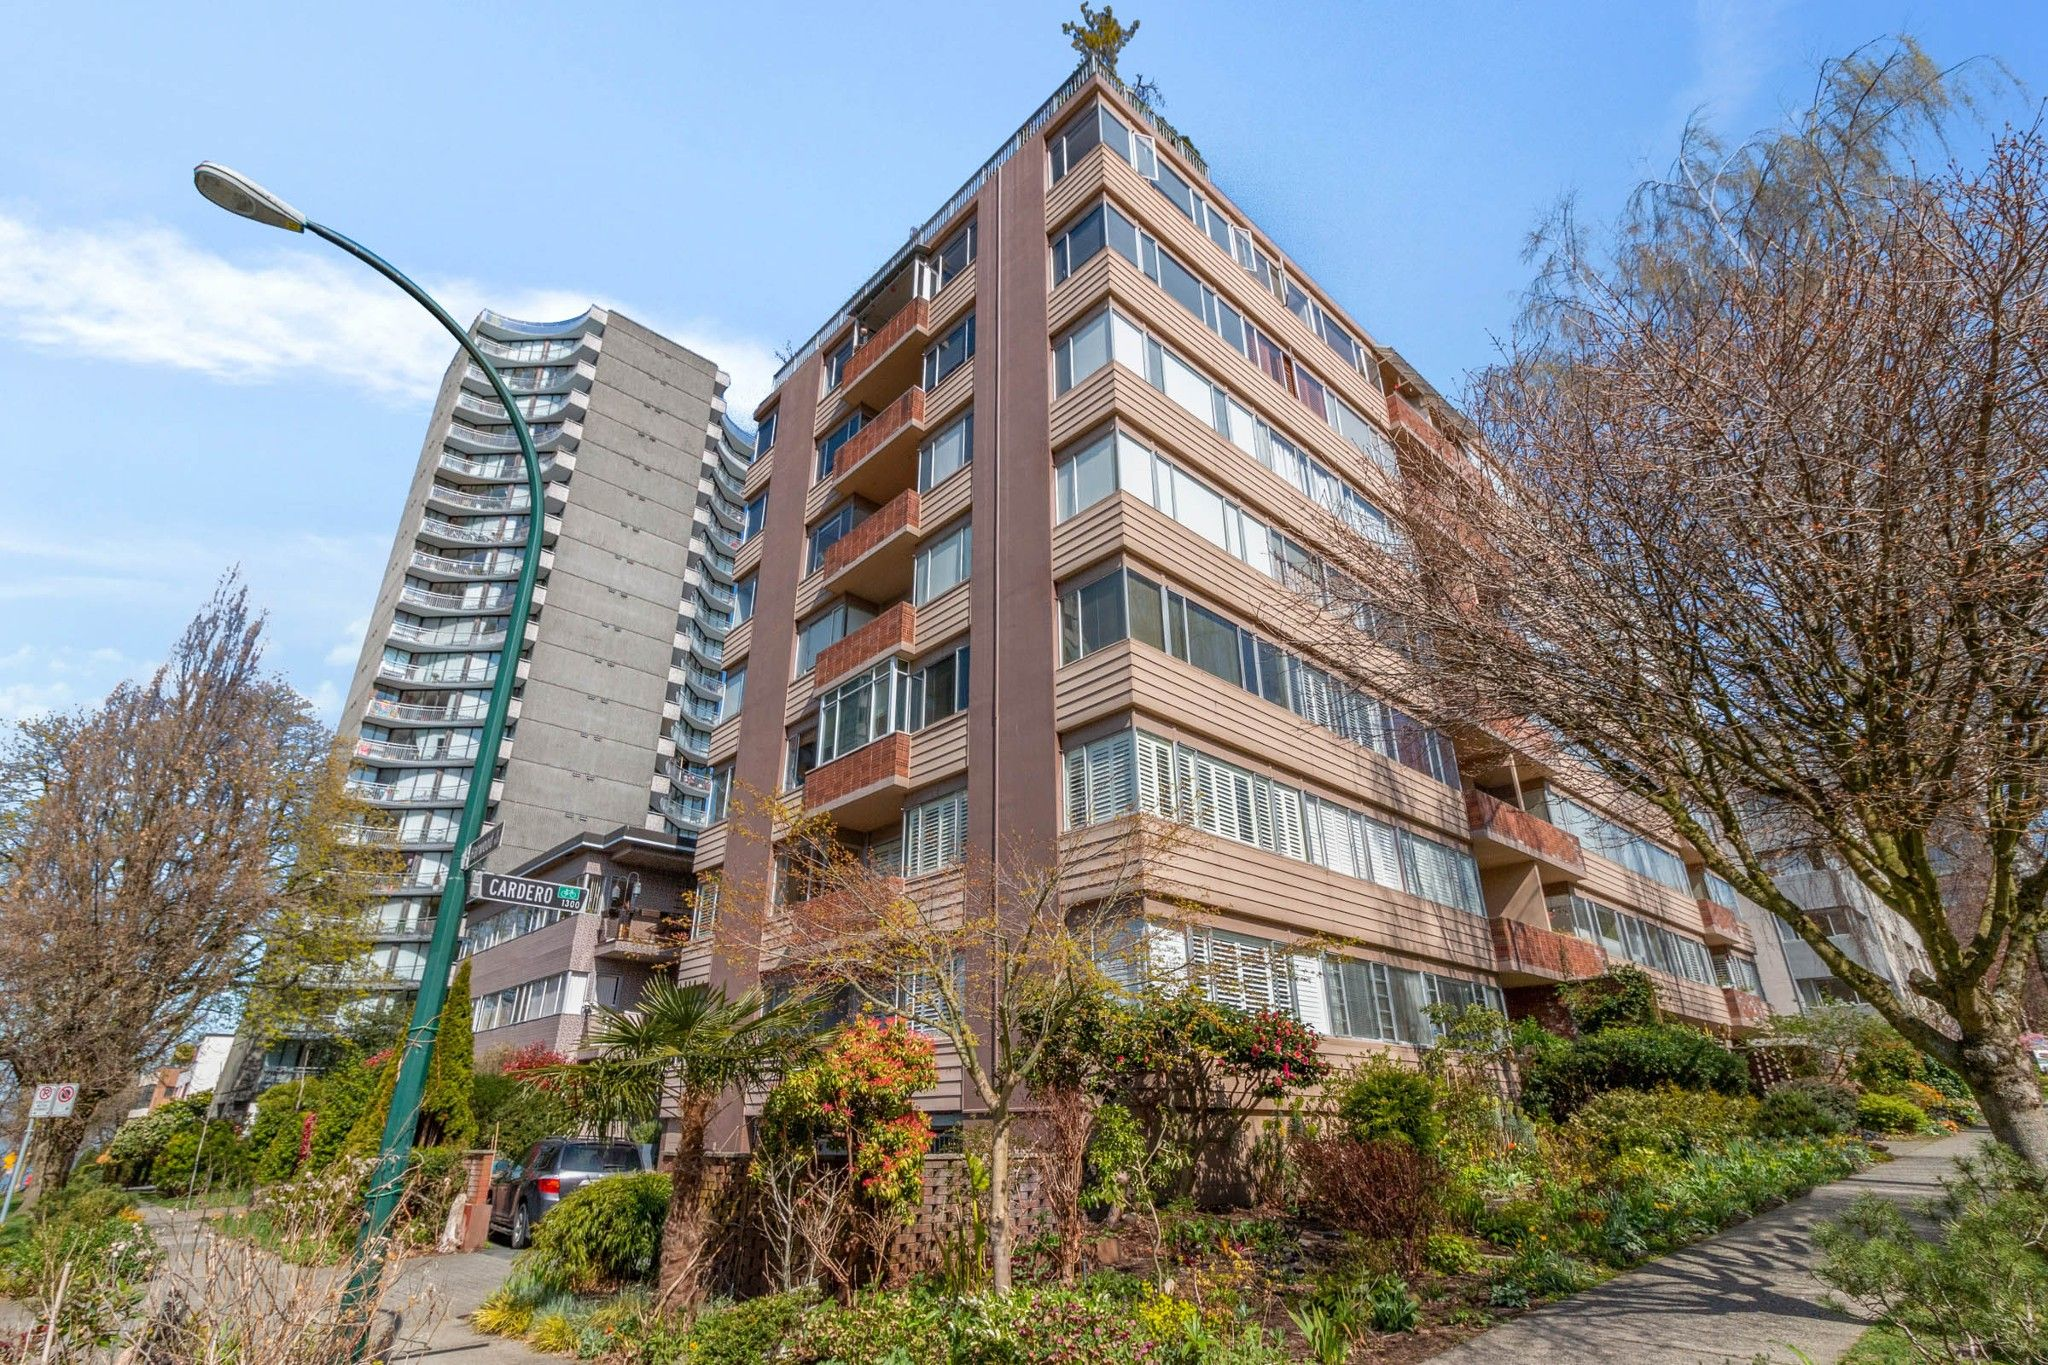 """Main Photo: 703 1315 CARDERO Street in Vancouver: West End VW Condo for sale in """"DIANNE COURT"""" (Vancouver West)  : MLS®# R2562868"""